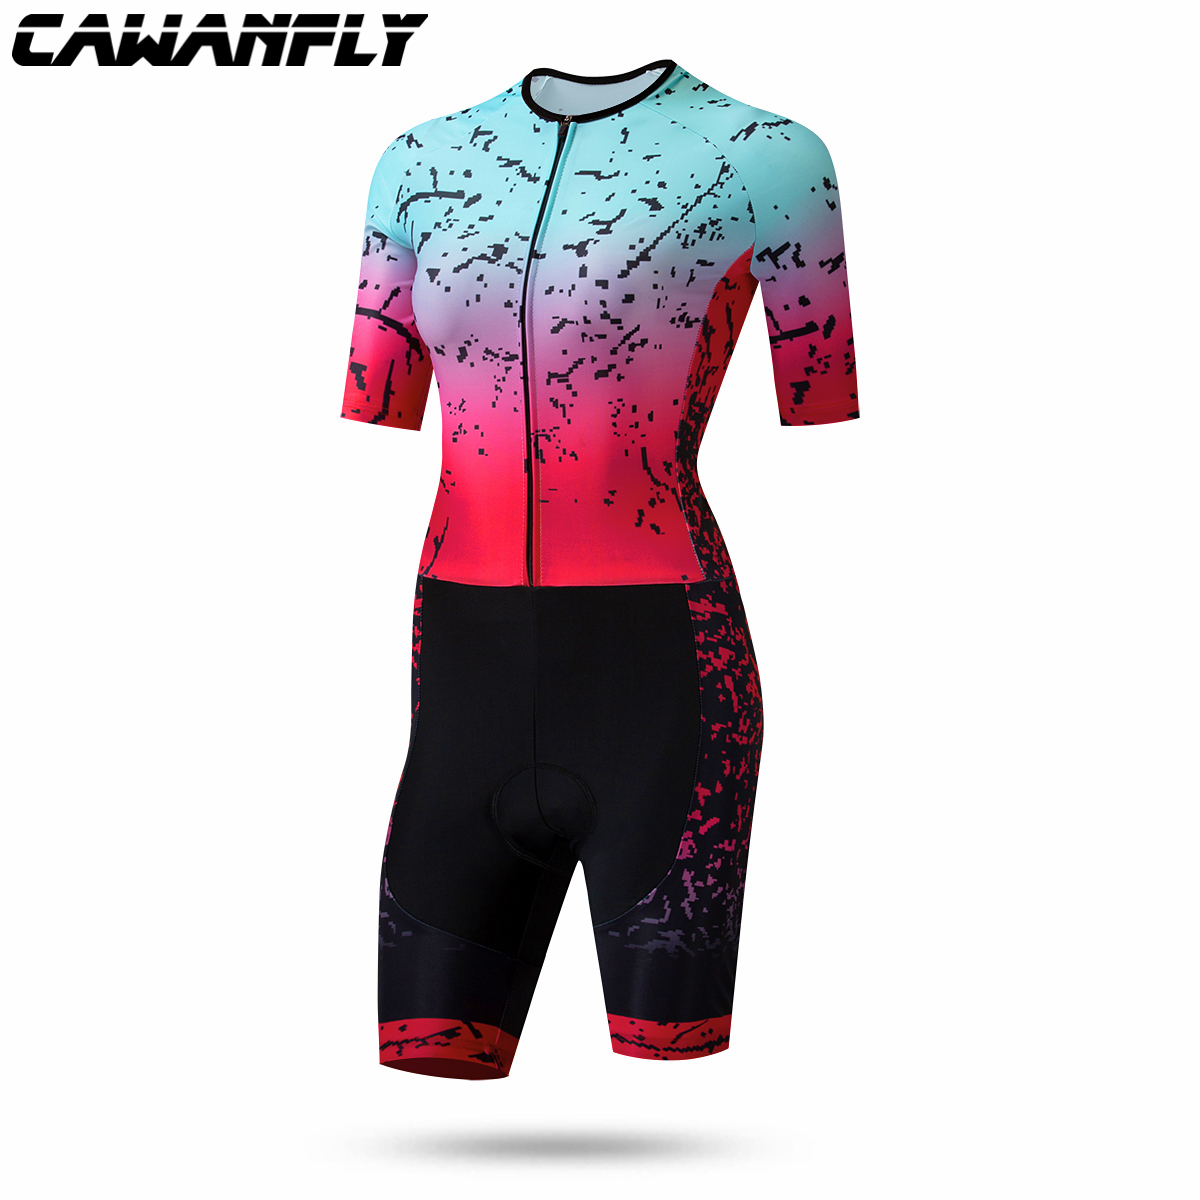 2020 Pro Team Triathlon Suit Women's Short Sleeve Cycling Jersey Skinsuit Jumpsuit Maillot Cycling Ropa Ciclismo Set Gel